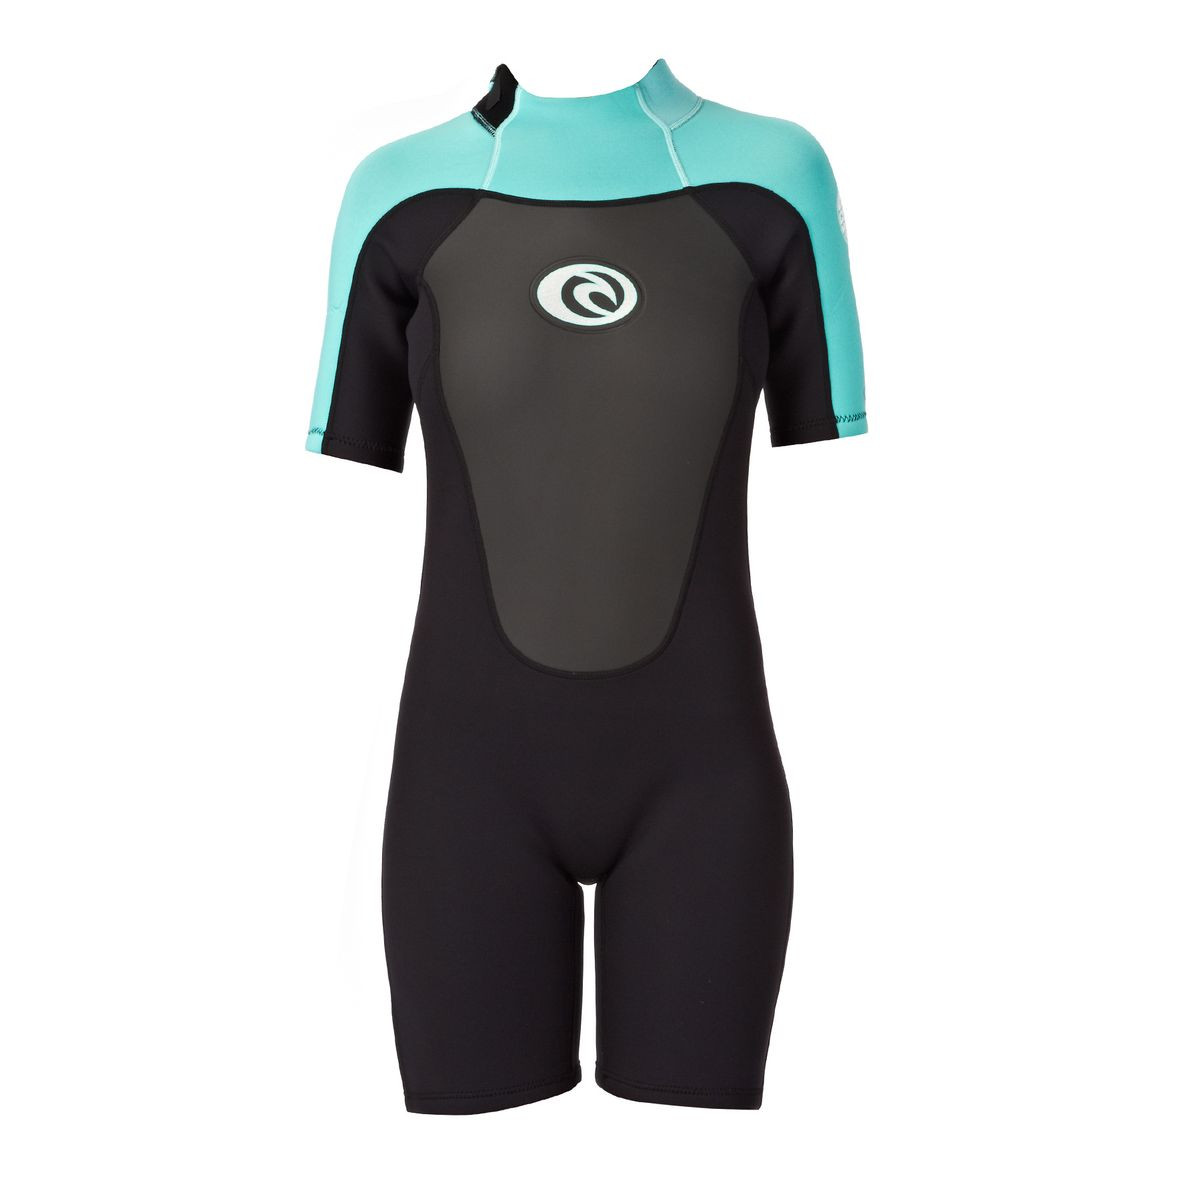 d366a1e152 Wetsuits - Women - Bodysurfing